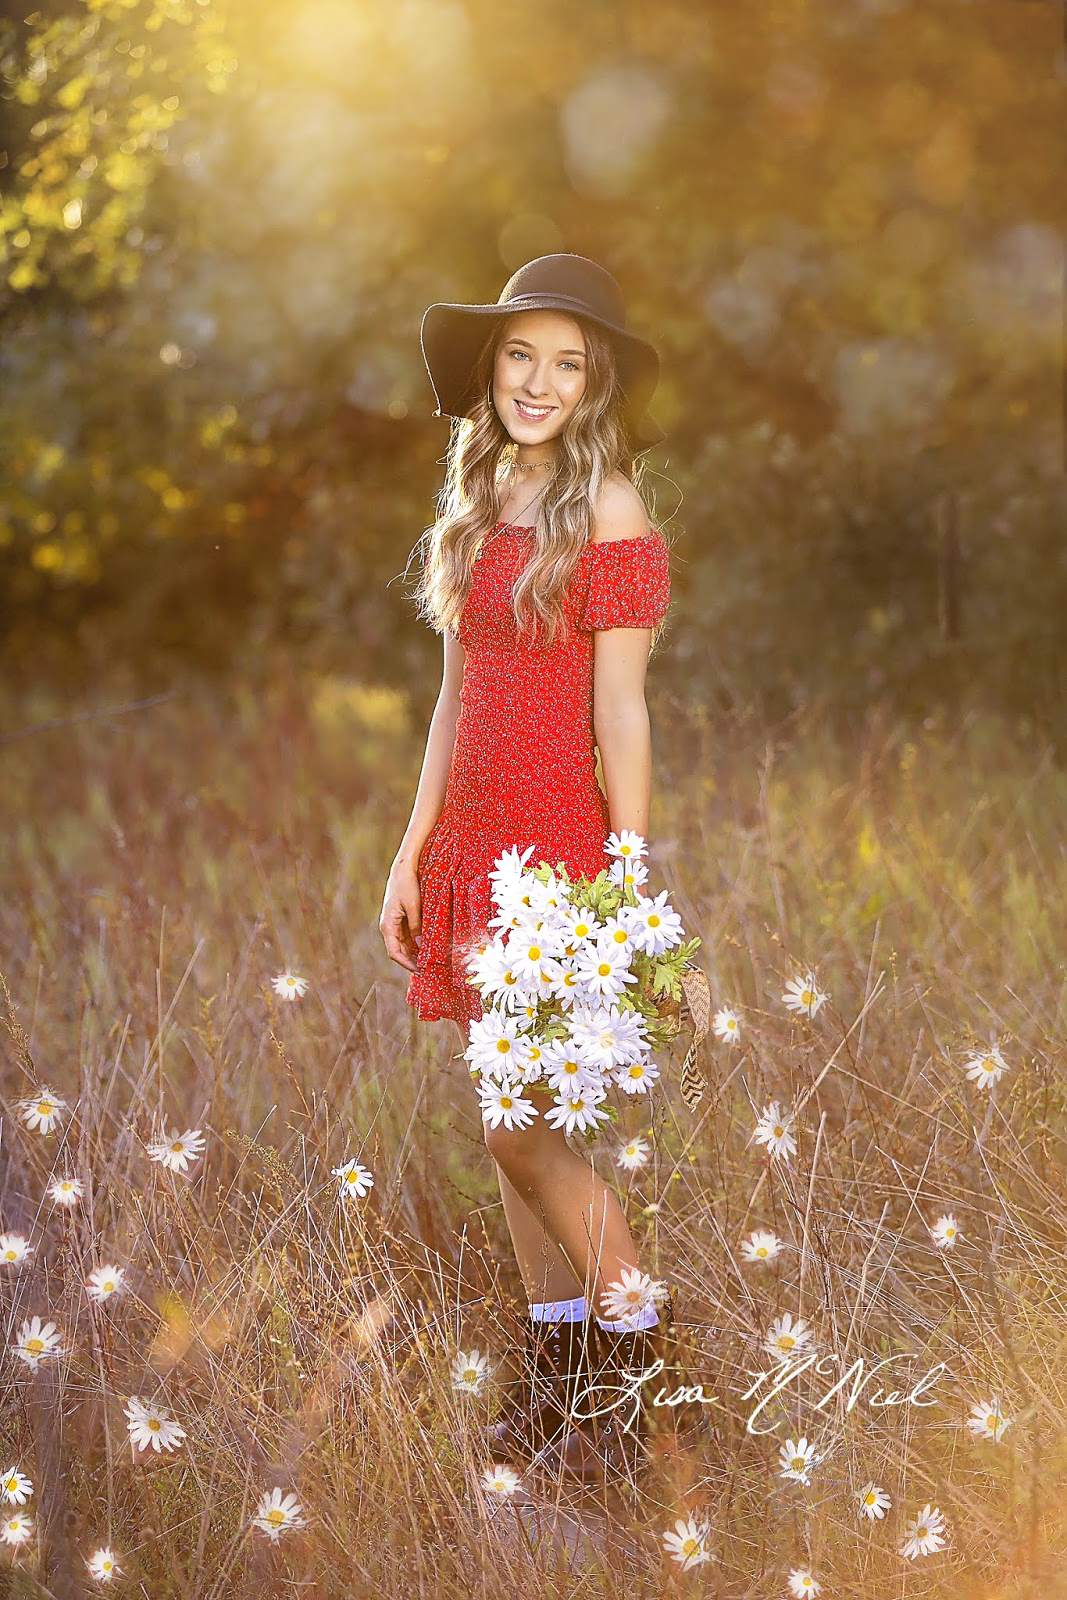 cute teen girl holding daisies in field